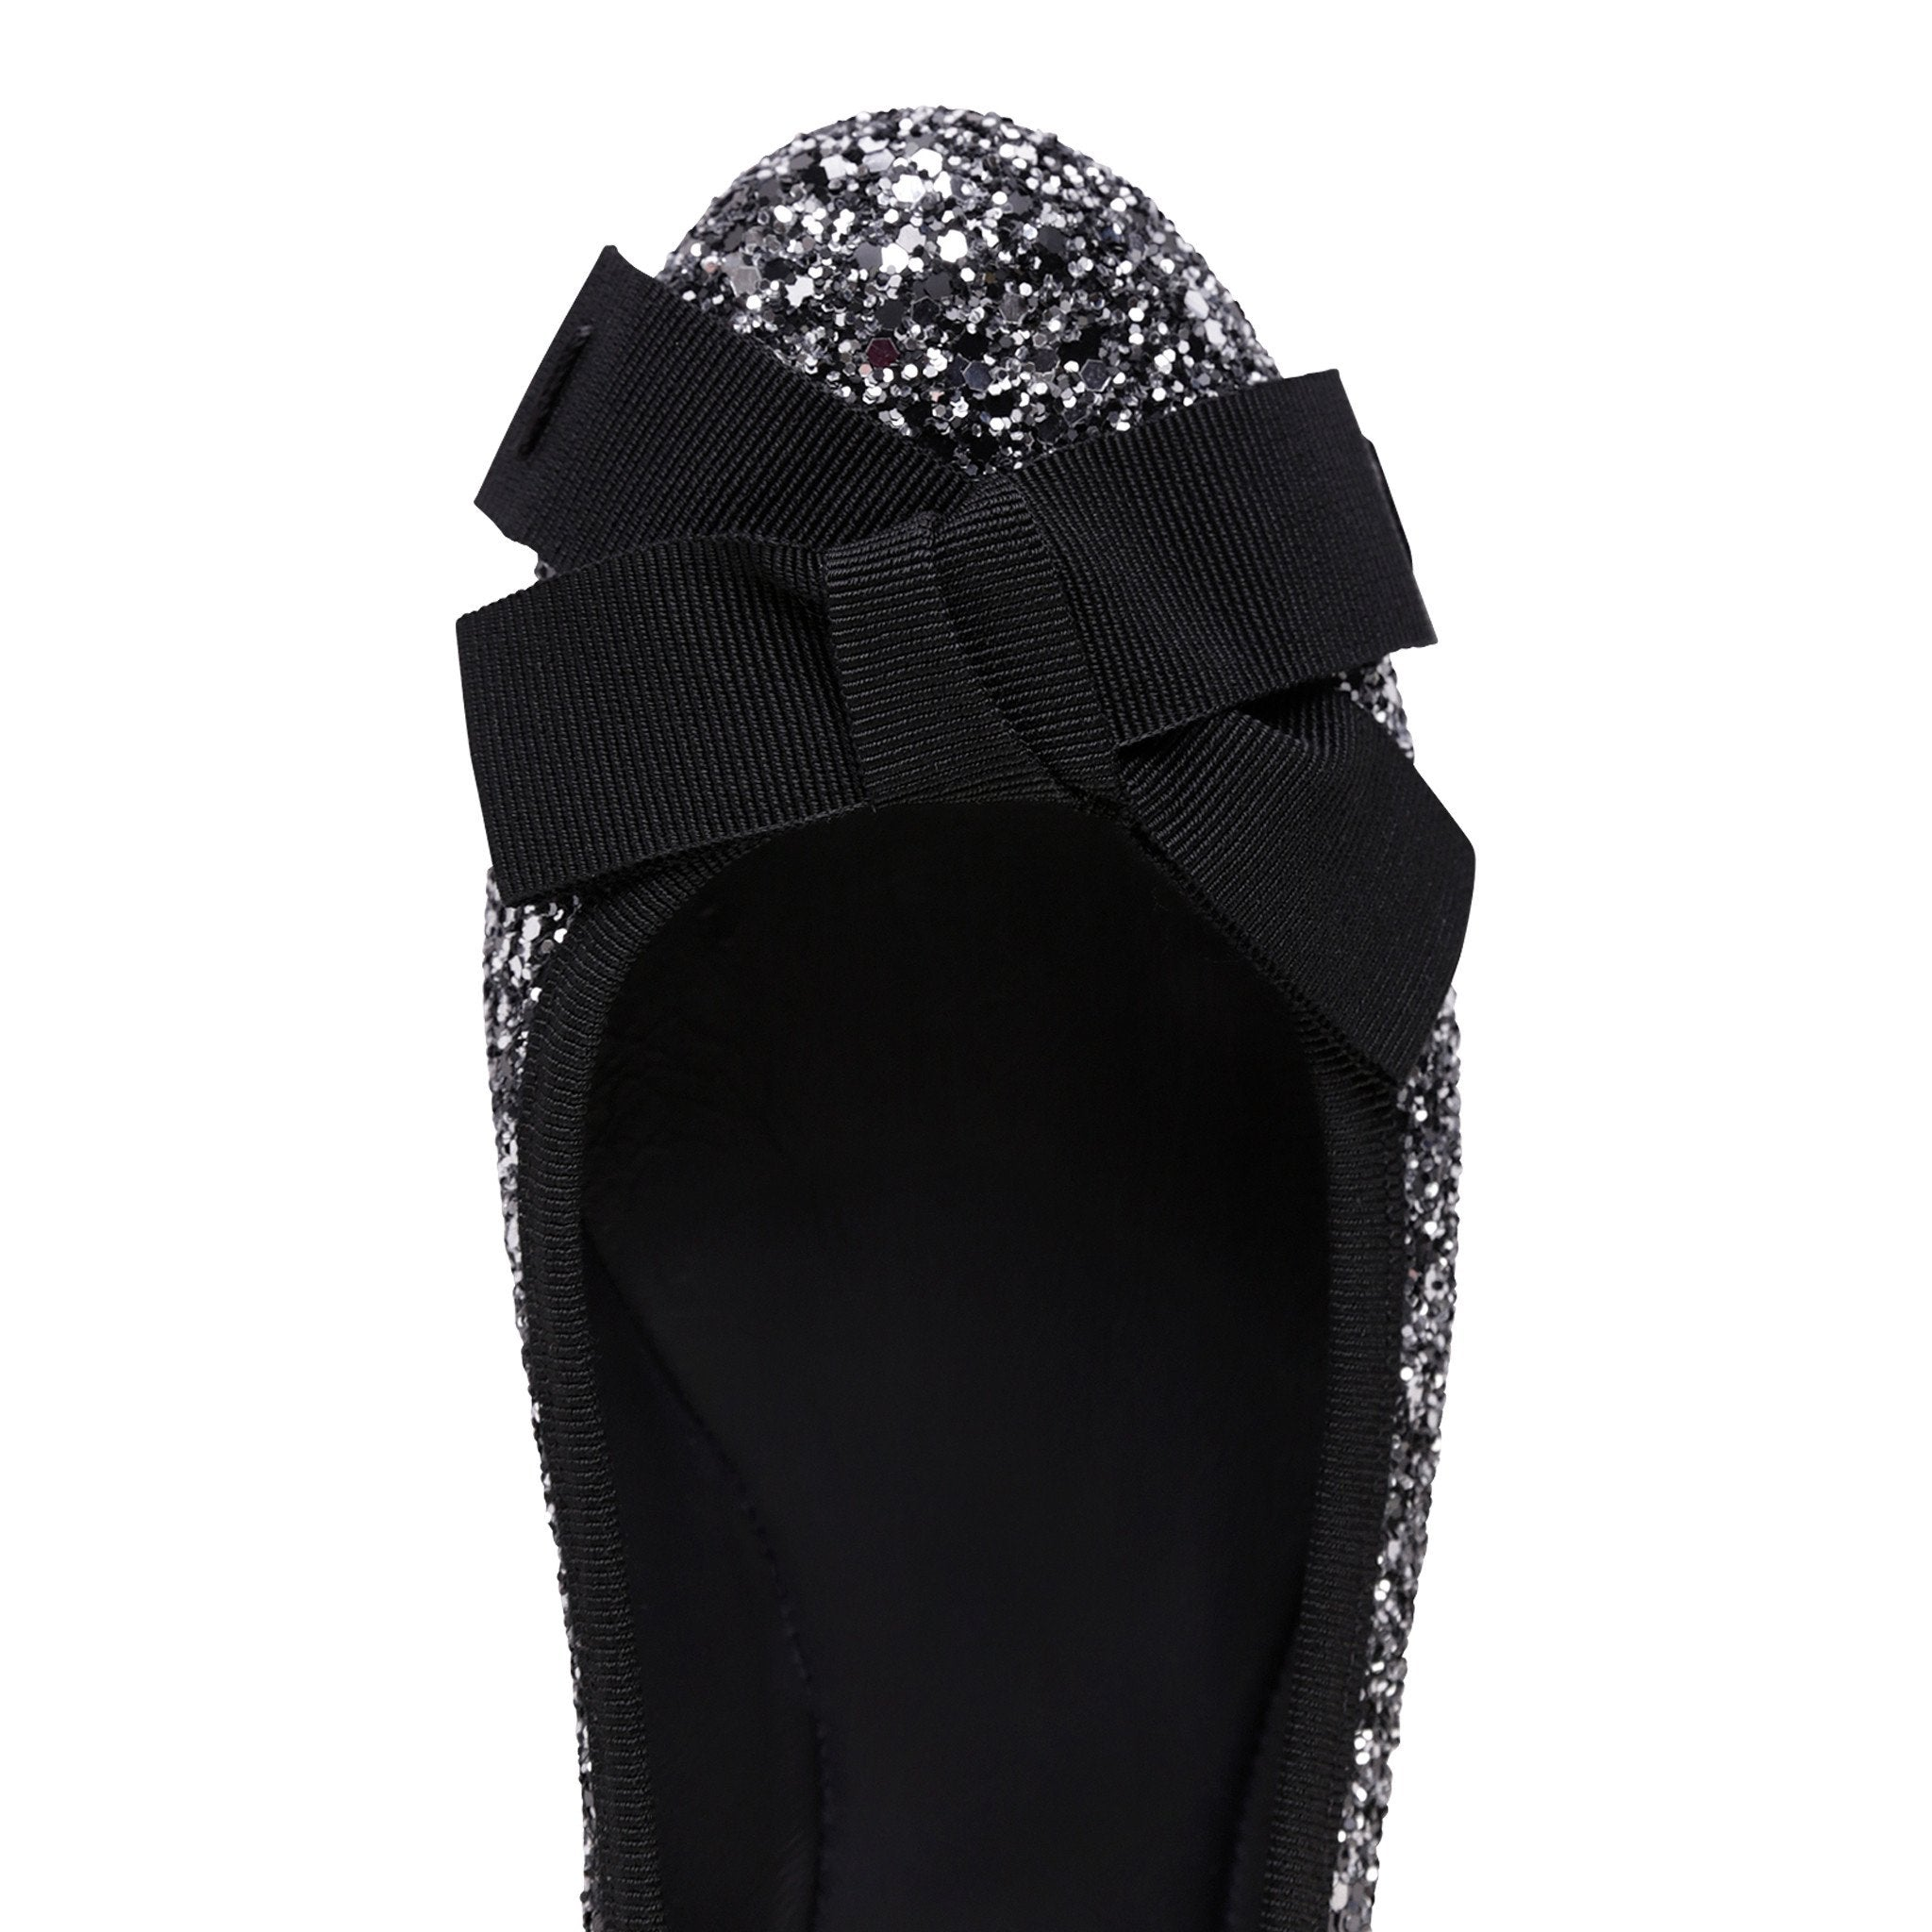 VENEZIA - Glitter Notte + Nero Grosgrain Bow + Trim, VIAJIYU - Women's Hand Made Sustainable Luxury Shoes. Made in Italy. Made to Order.